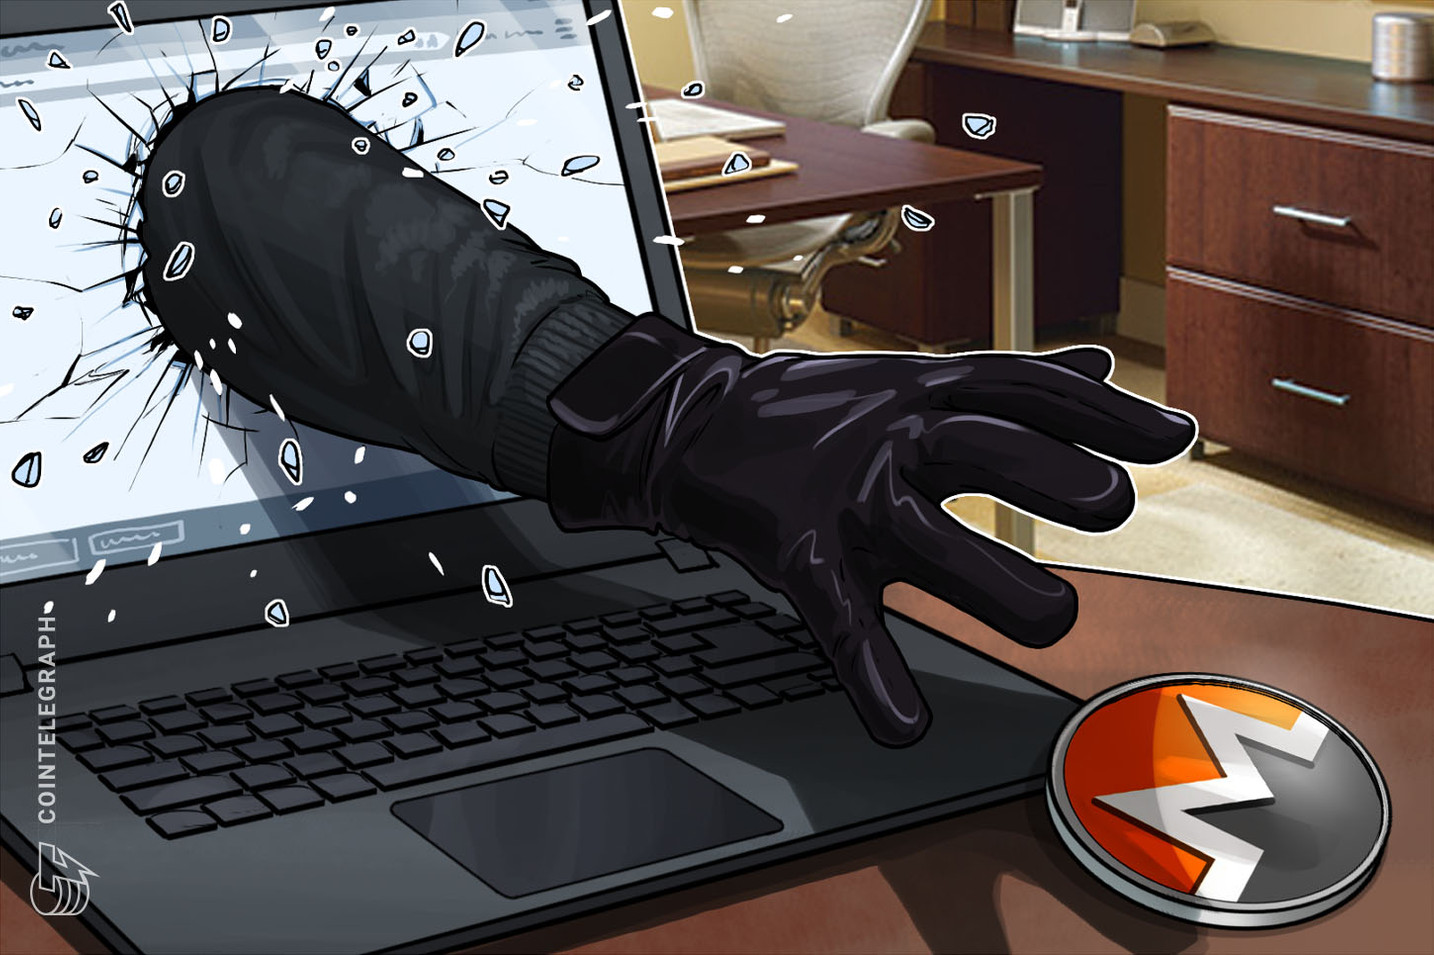 MEGA Chrome Extension Compromised to Steal Users' Monero